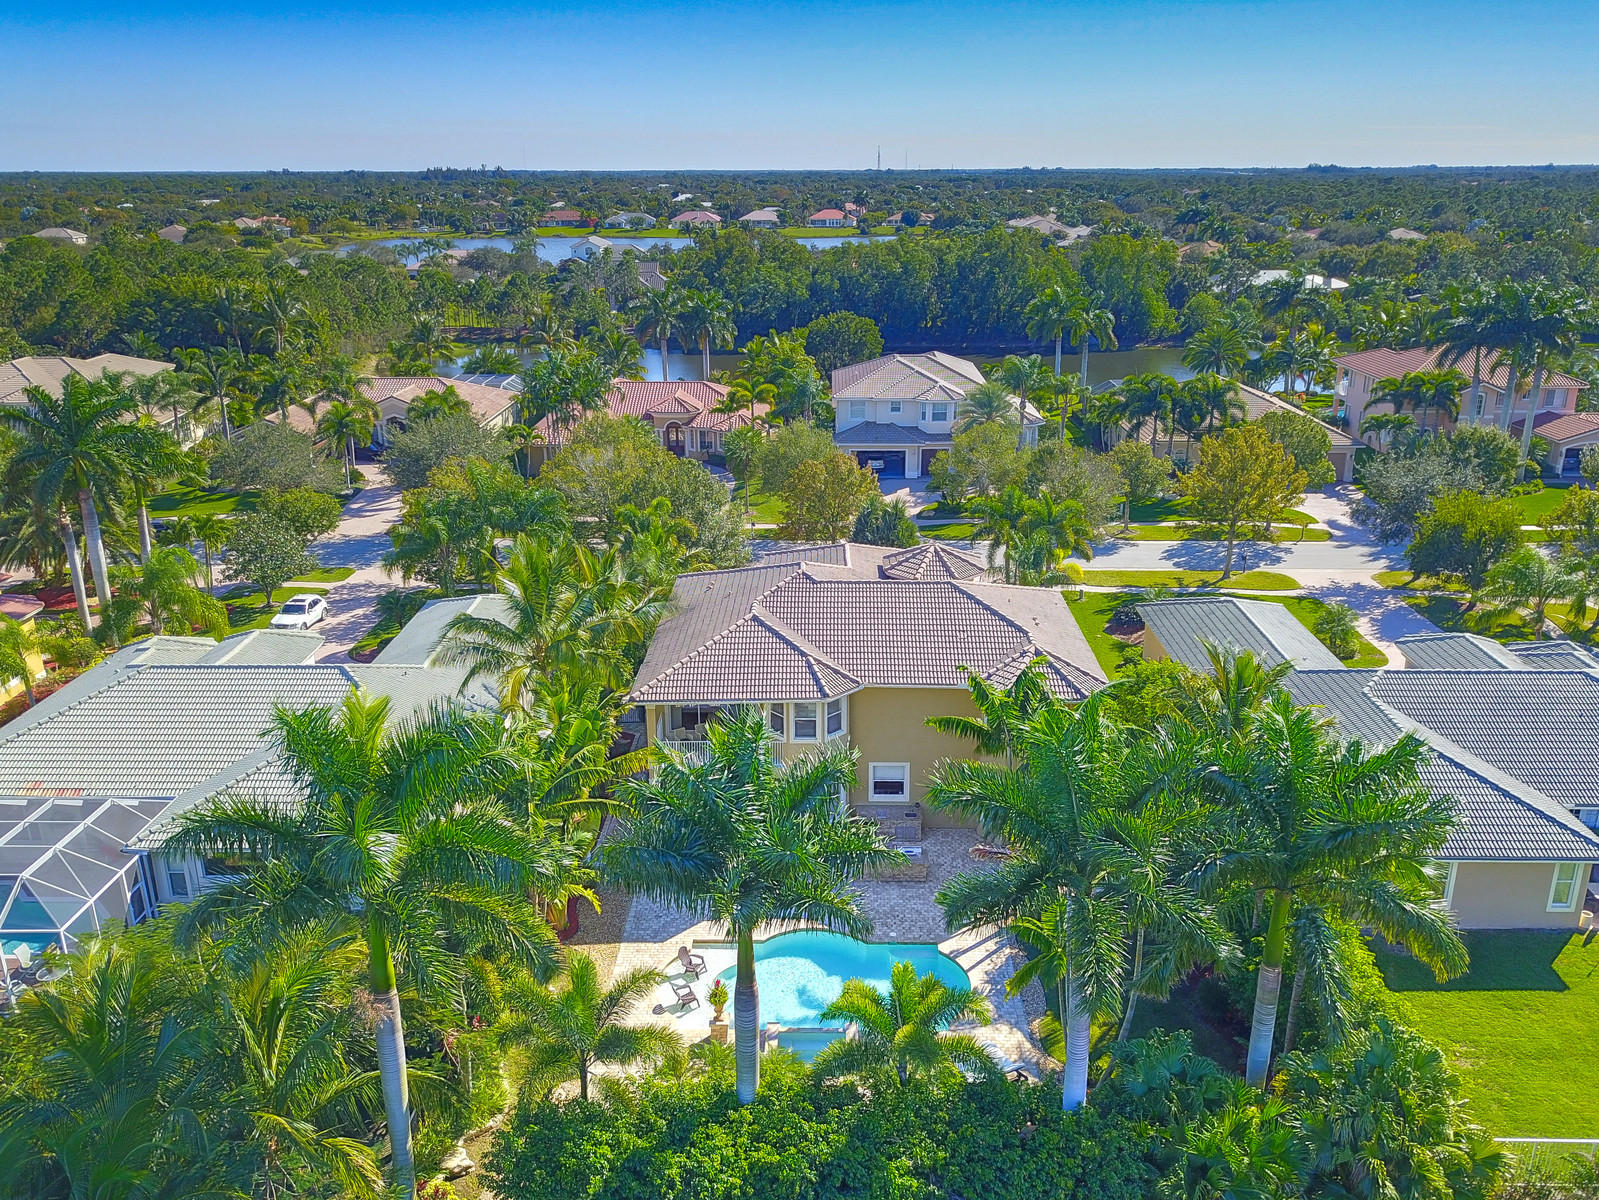 PALM CITY HOMES